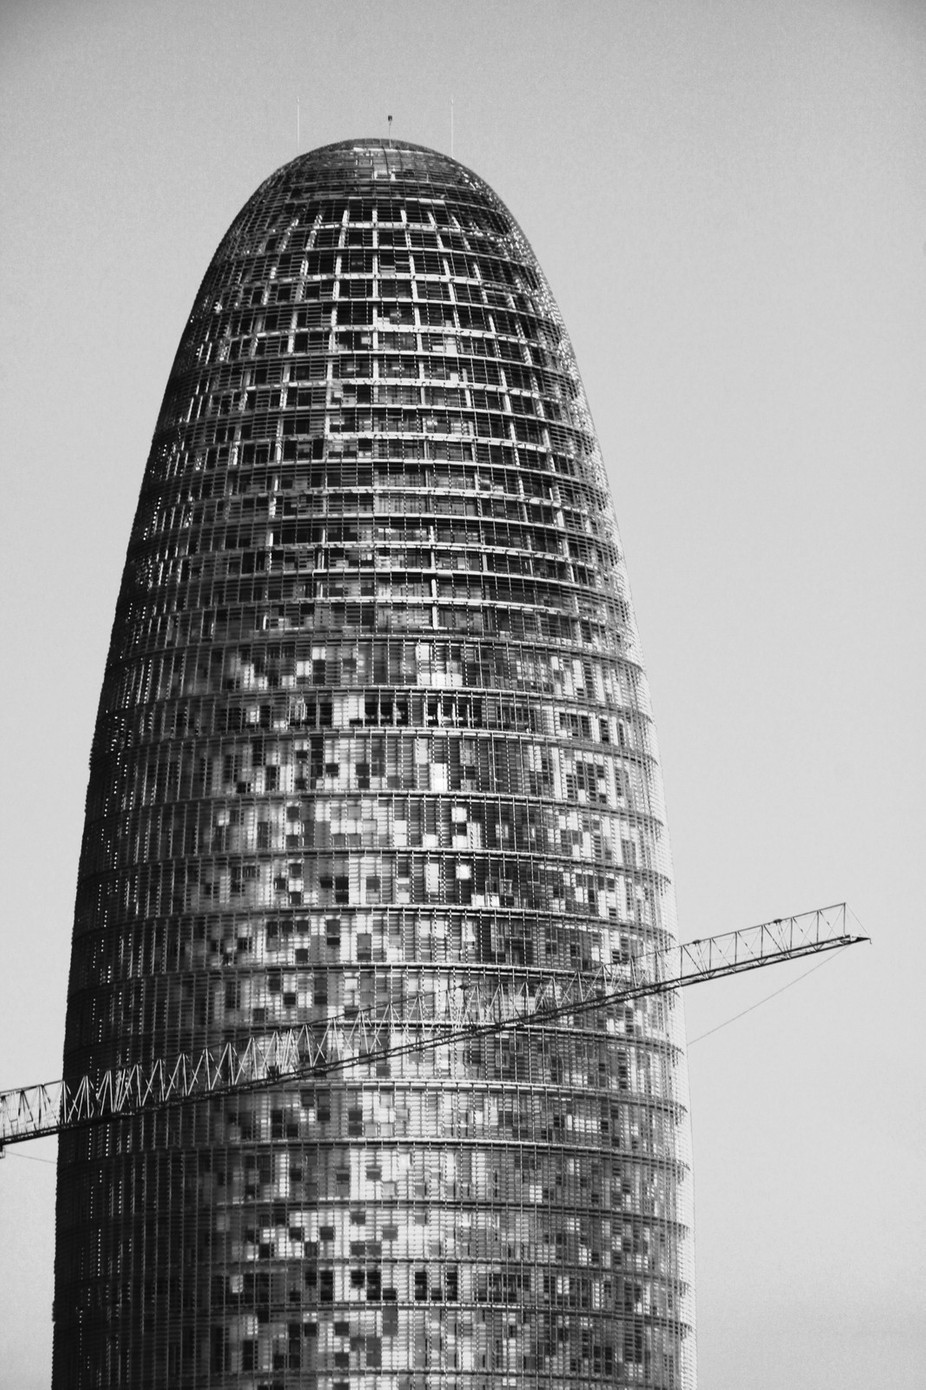 Barcelona by TaosBritDan - Tall Structures Photo Contest